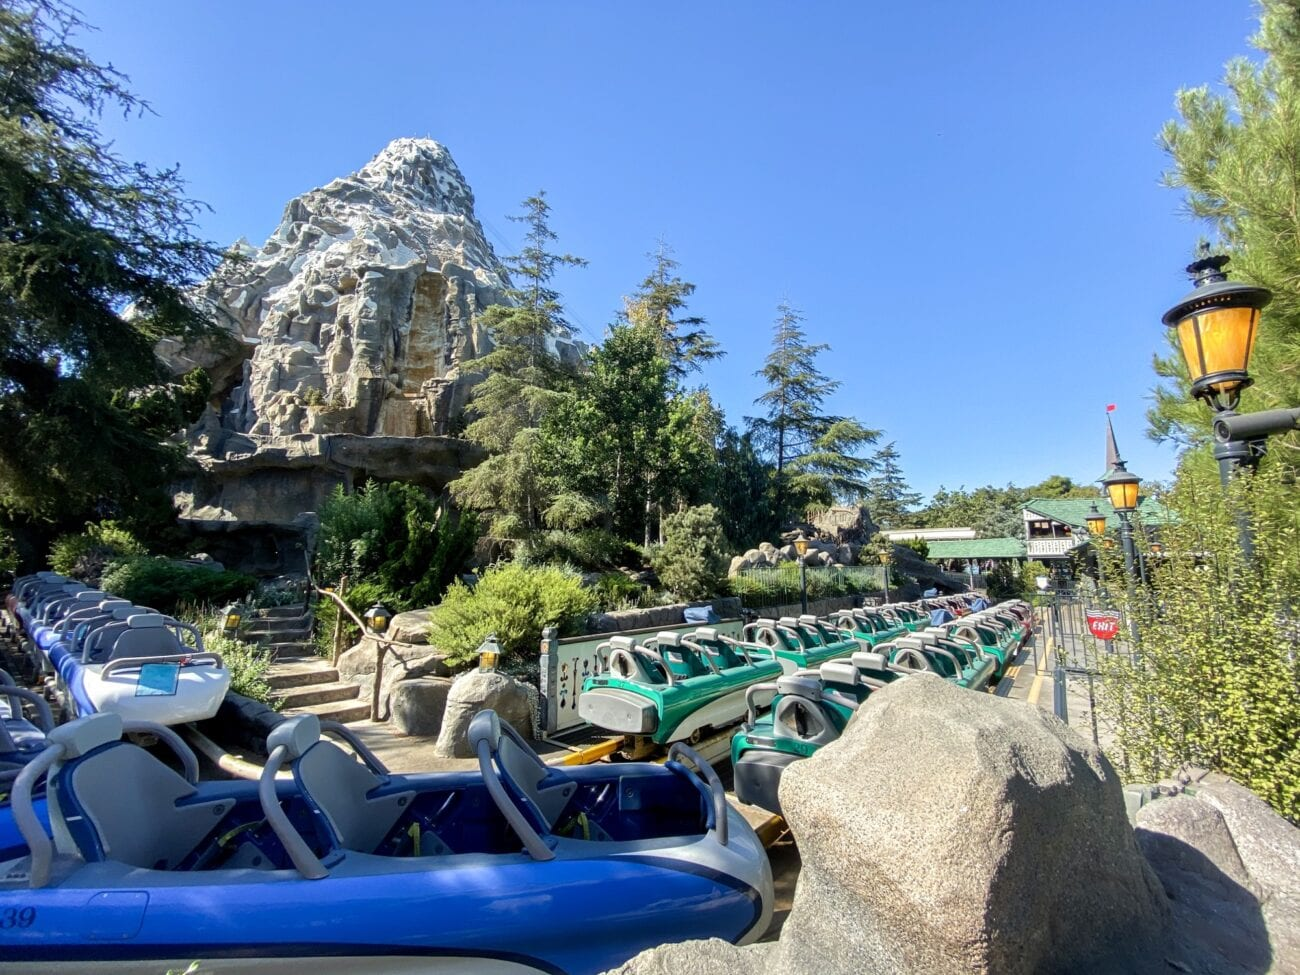 Even with Disneyland now officially back open, the beloved Matterhorn Bobsleds are still shut down. Just how long will it take to repair this ride?